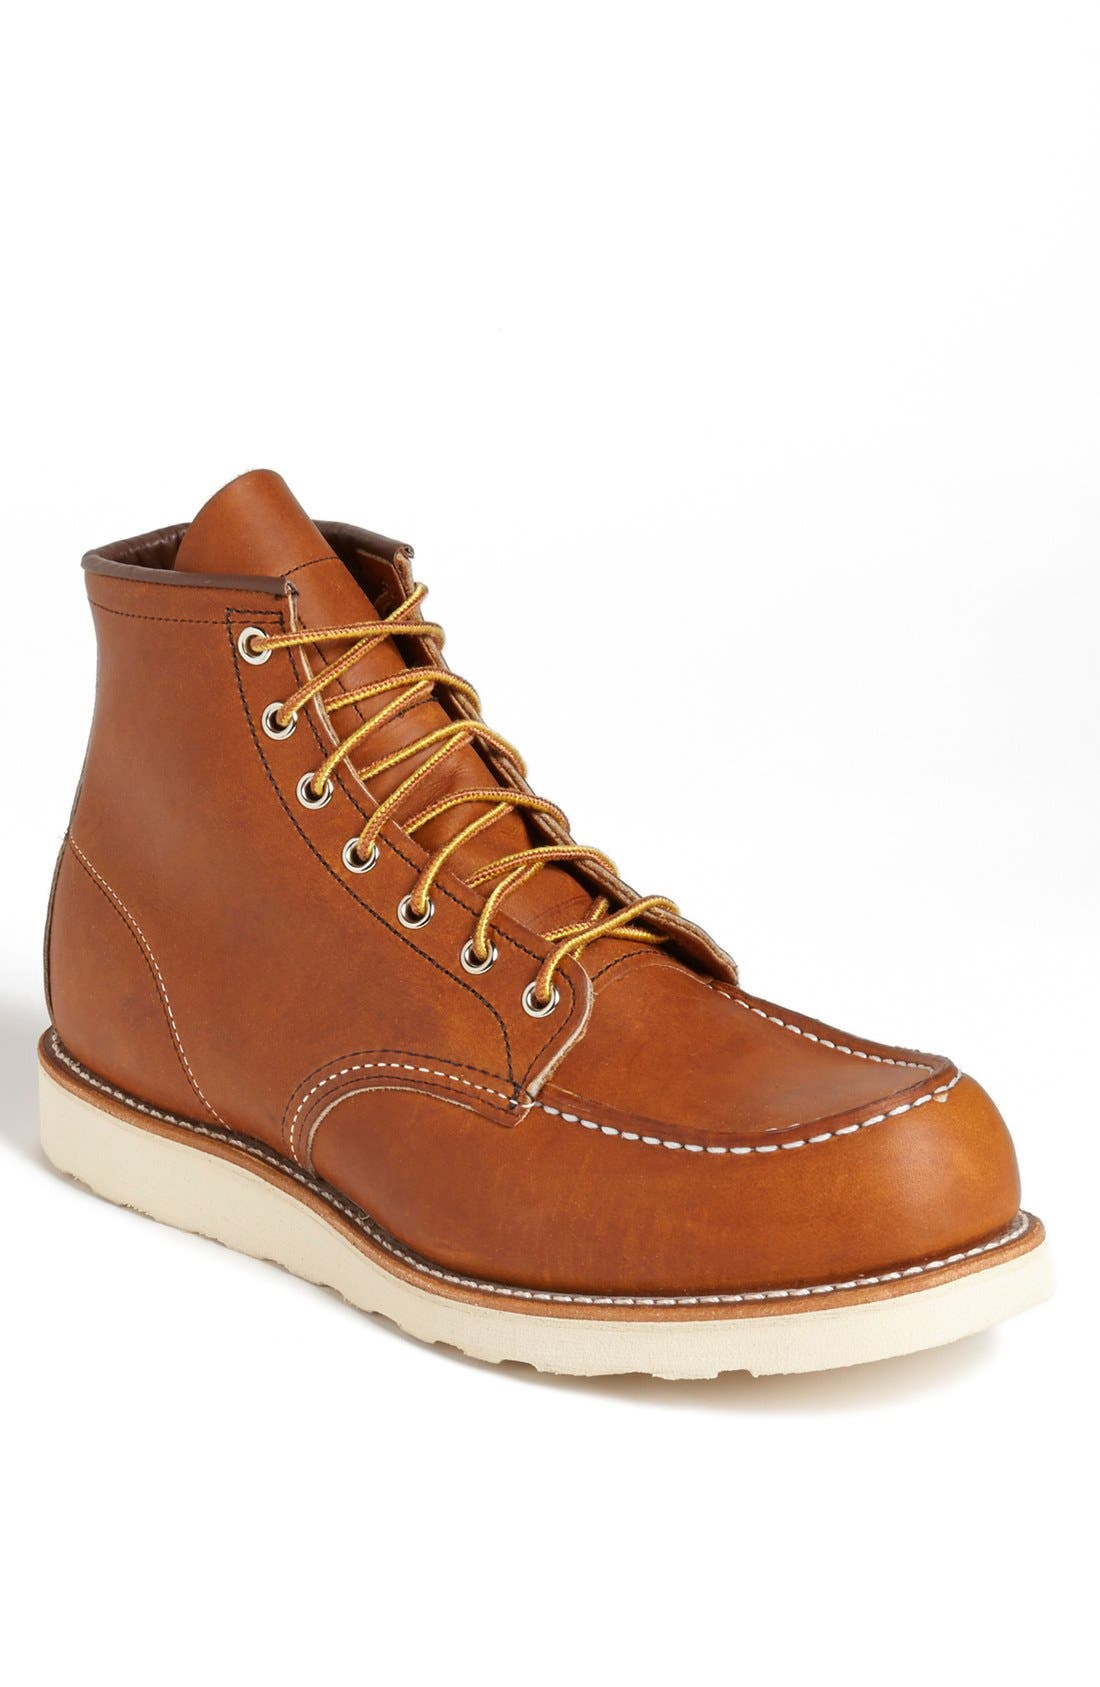 Alternate Image 1 Selected - Red Wing '875' 6 Inch Moc Toe Boot